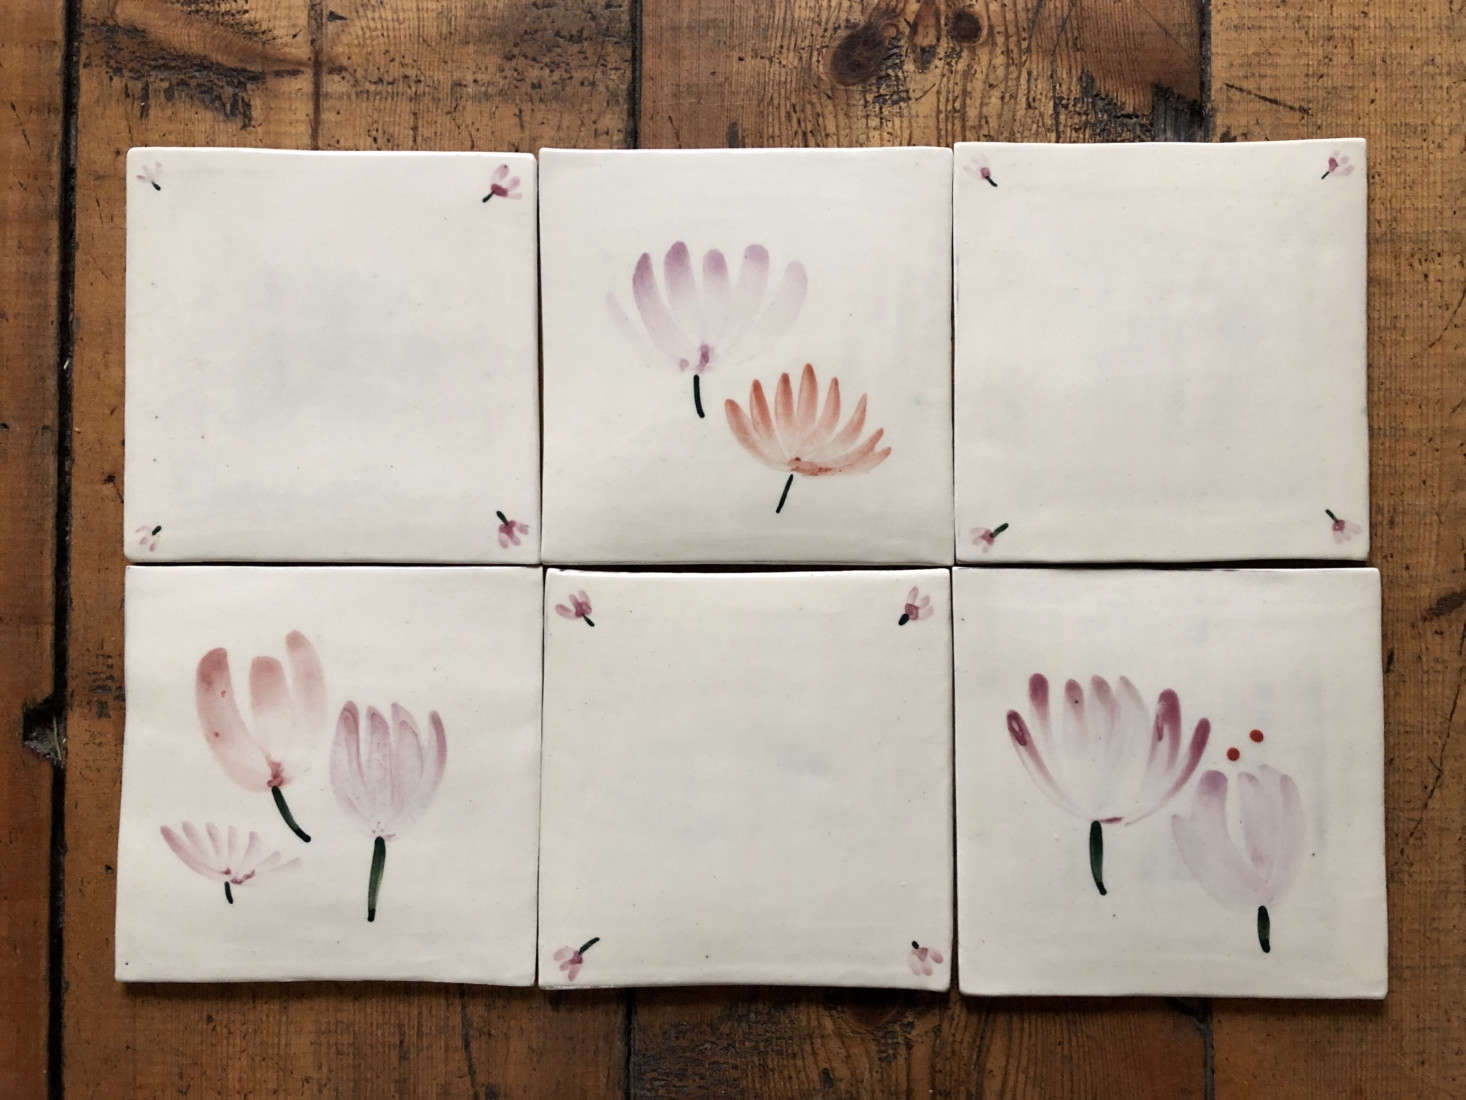 These charming hand-painted tiles that Julie discovered would be perfect in a country home. See Whimsical Hand-Painted Tiles from UK Artist Lisa Hardy + Edit58.